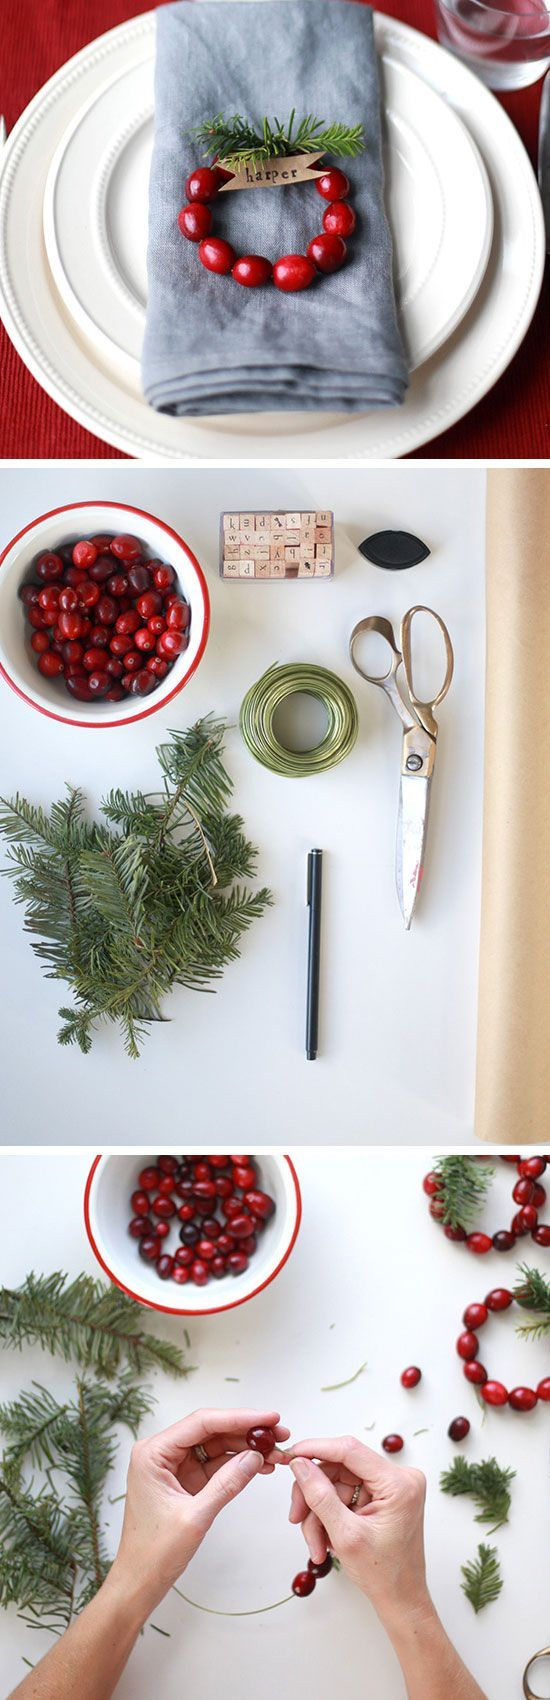 DIY Mini Cranberry Wreath Place Cards | Click for 30 DIY Christmas Table Centerpiece Ideas | DIY Christmas Table Decoration Ideas: